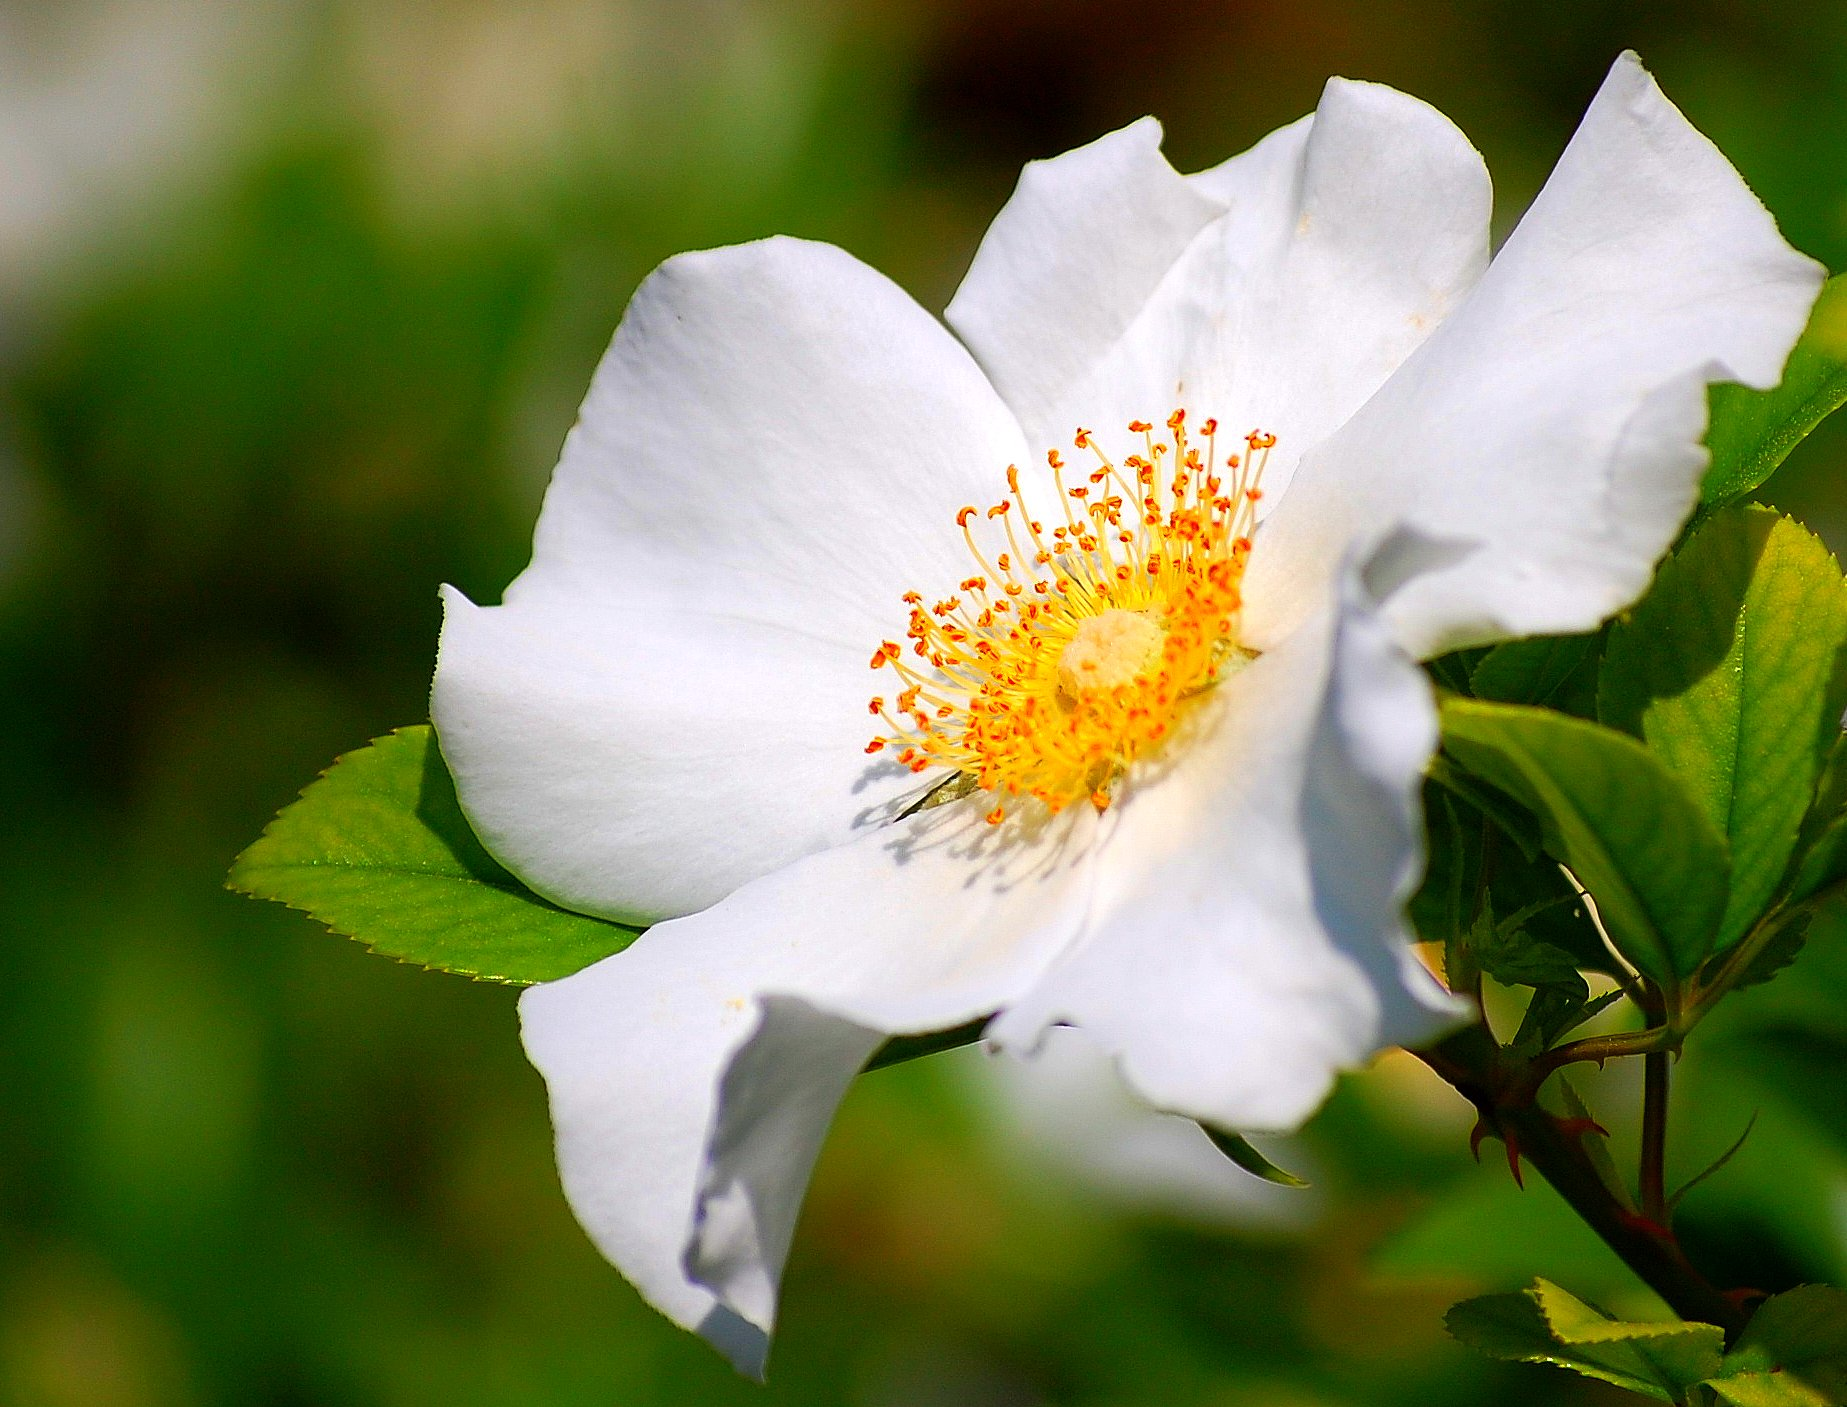 cherokee rose rosa laevigata also known as camellia rose